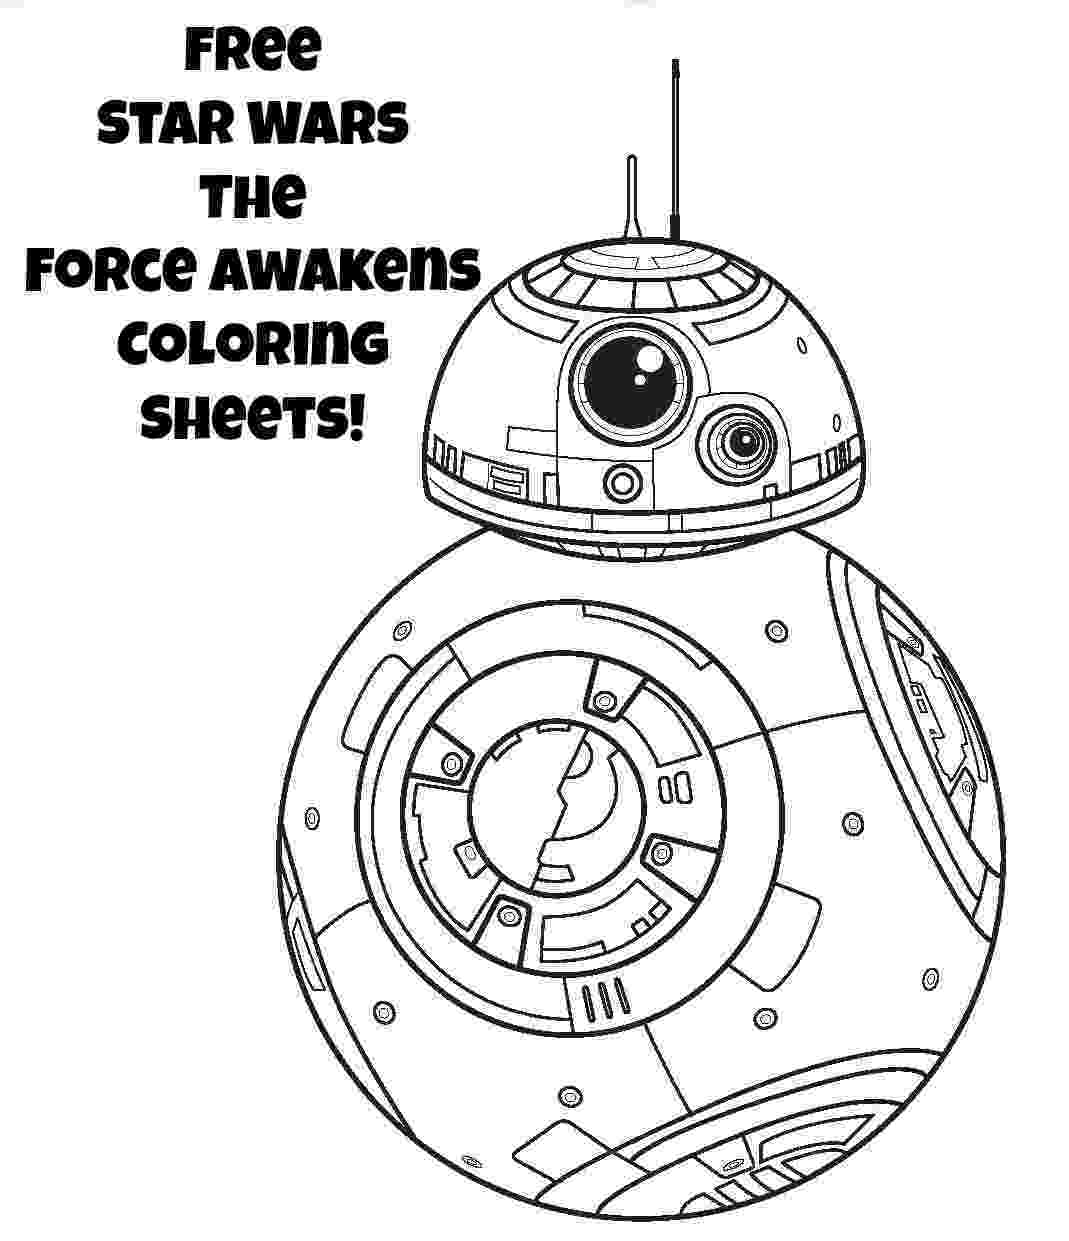 star wars print out coloring pages star wars coloring pages getcoloringpagescom out coloring star wars pages print